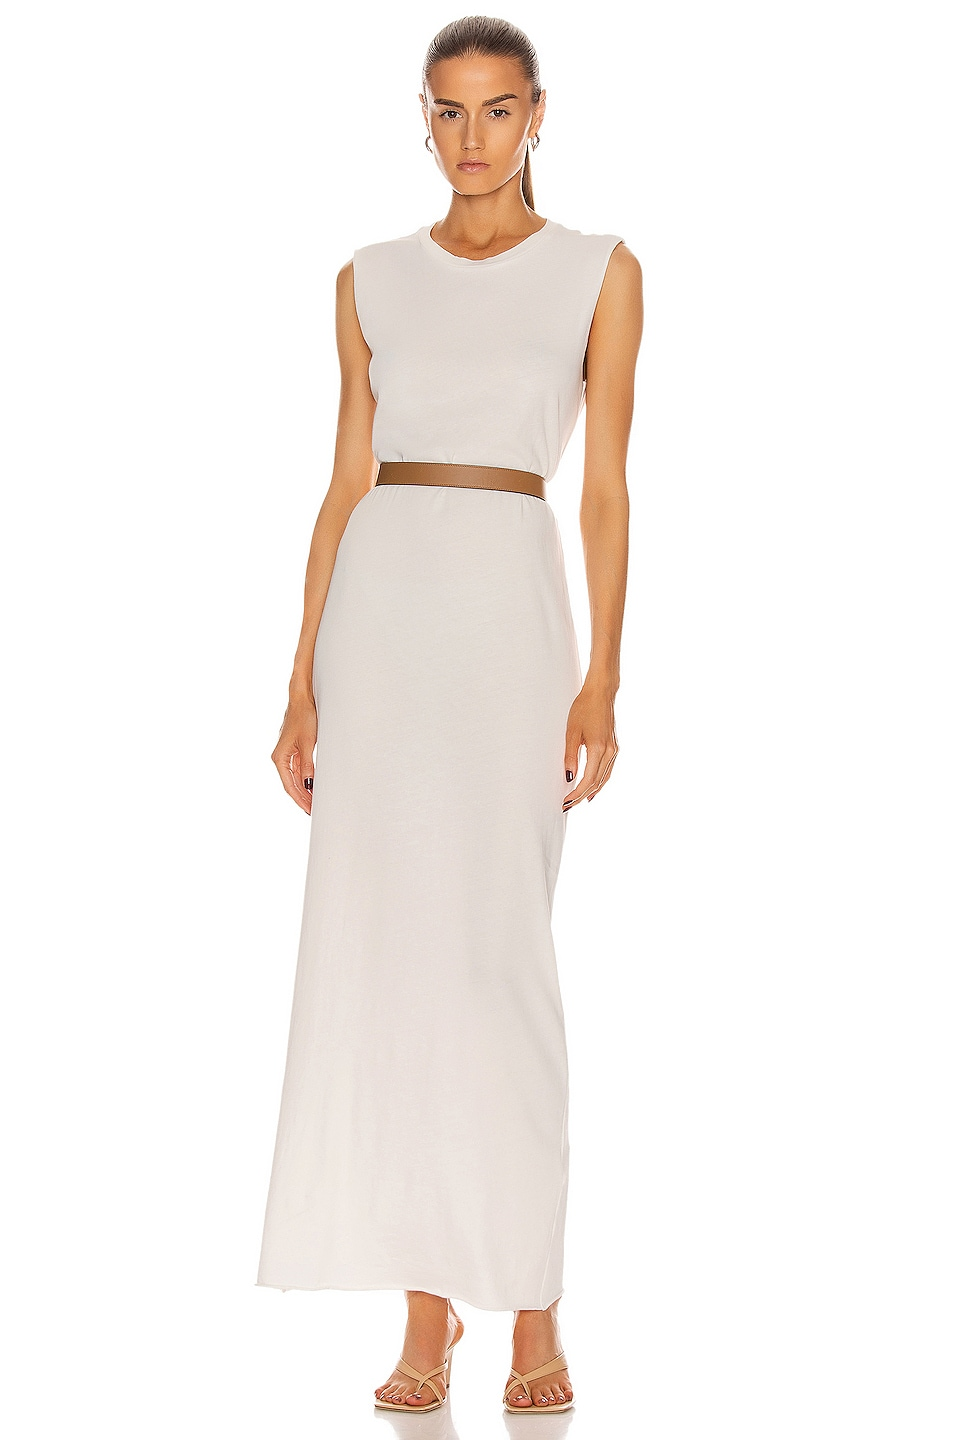 Image 1 of Raquel Allegra Muscle Maxi Dress in White